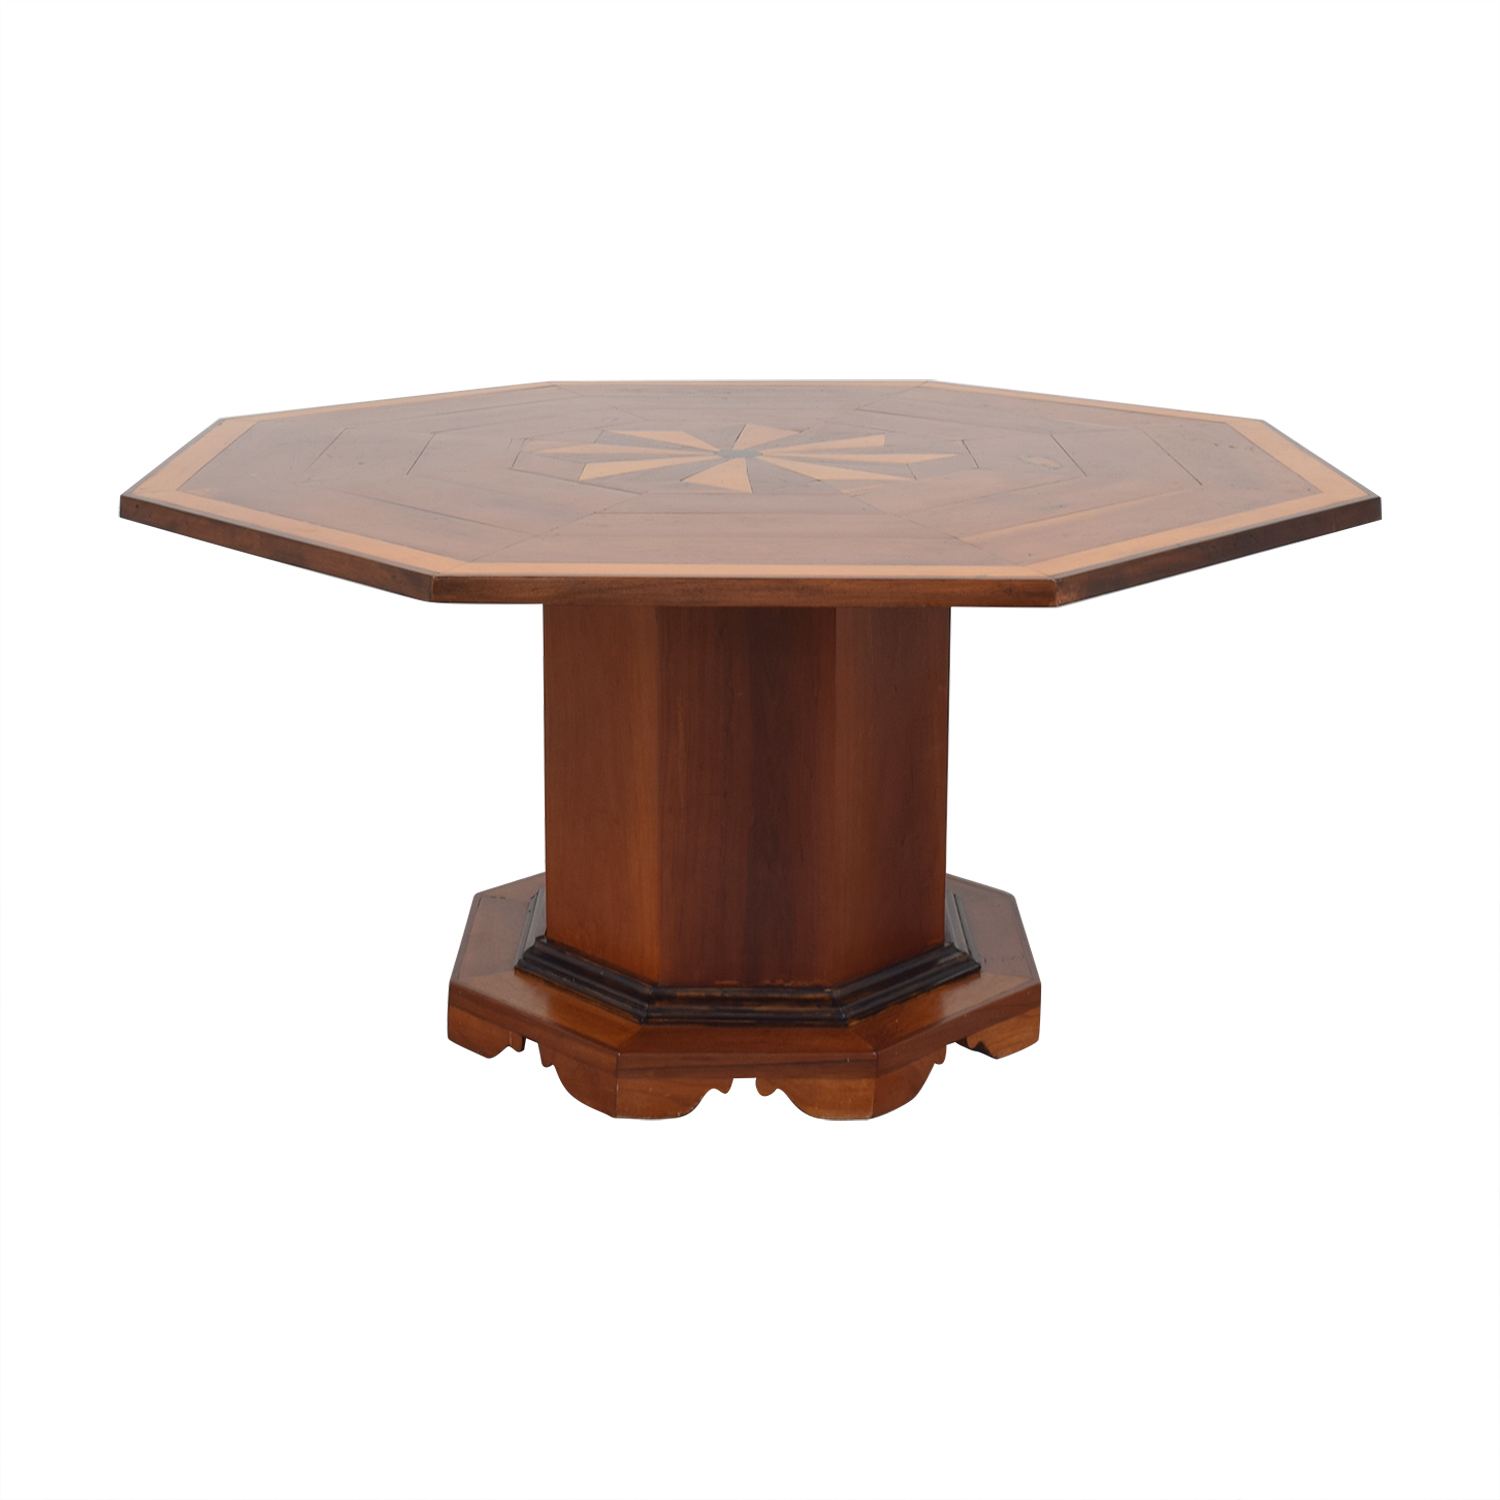 Octagonal Dining Table with Inlay sale